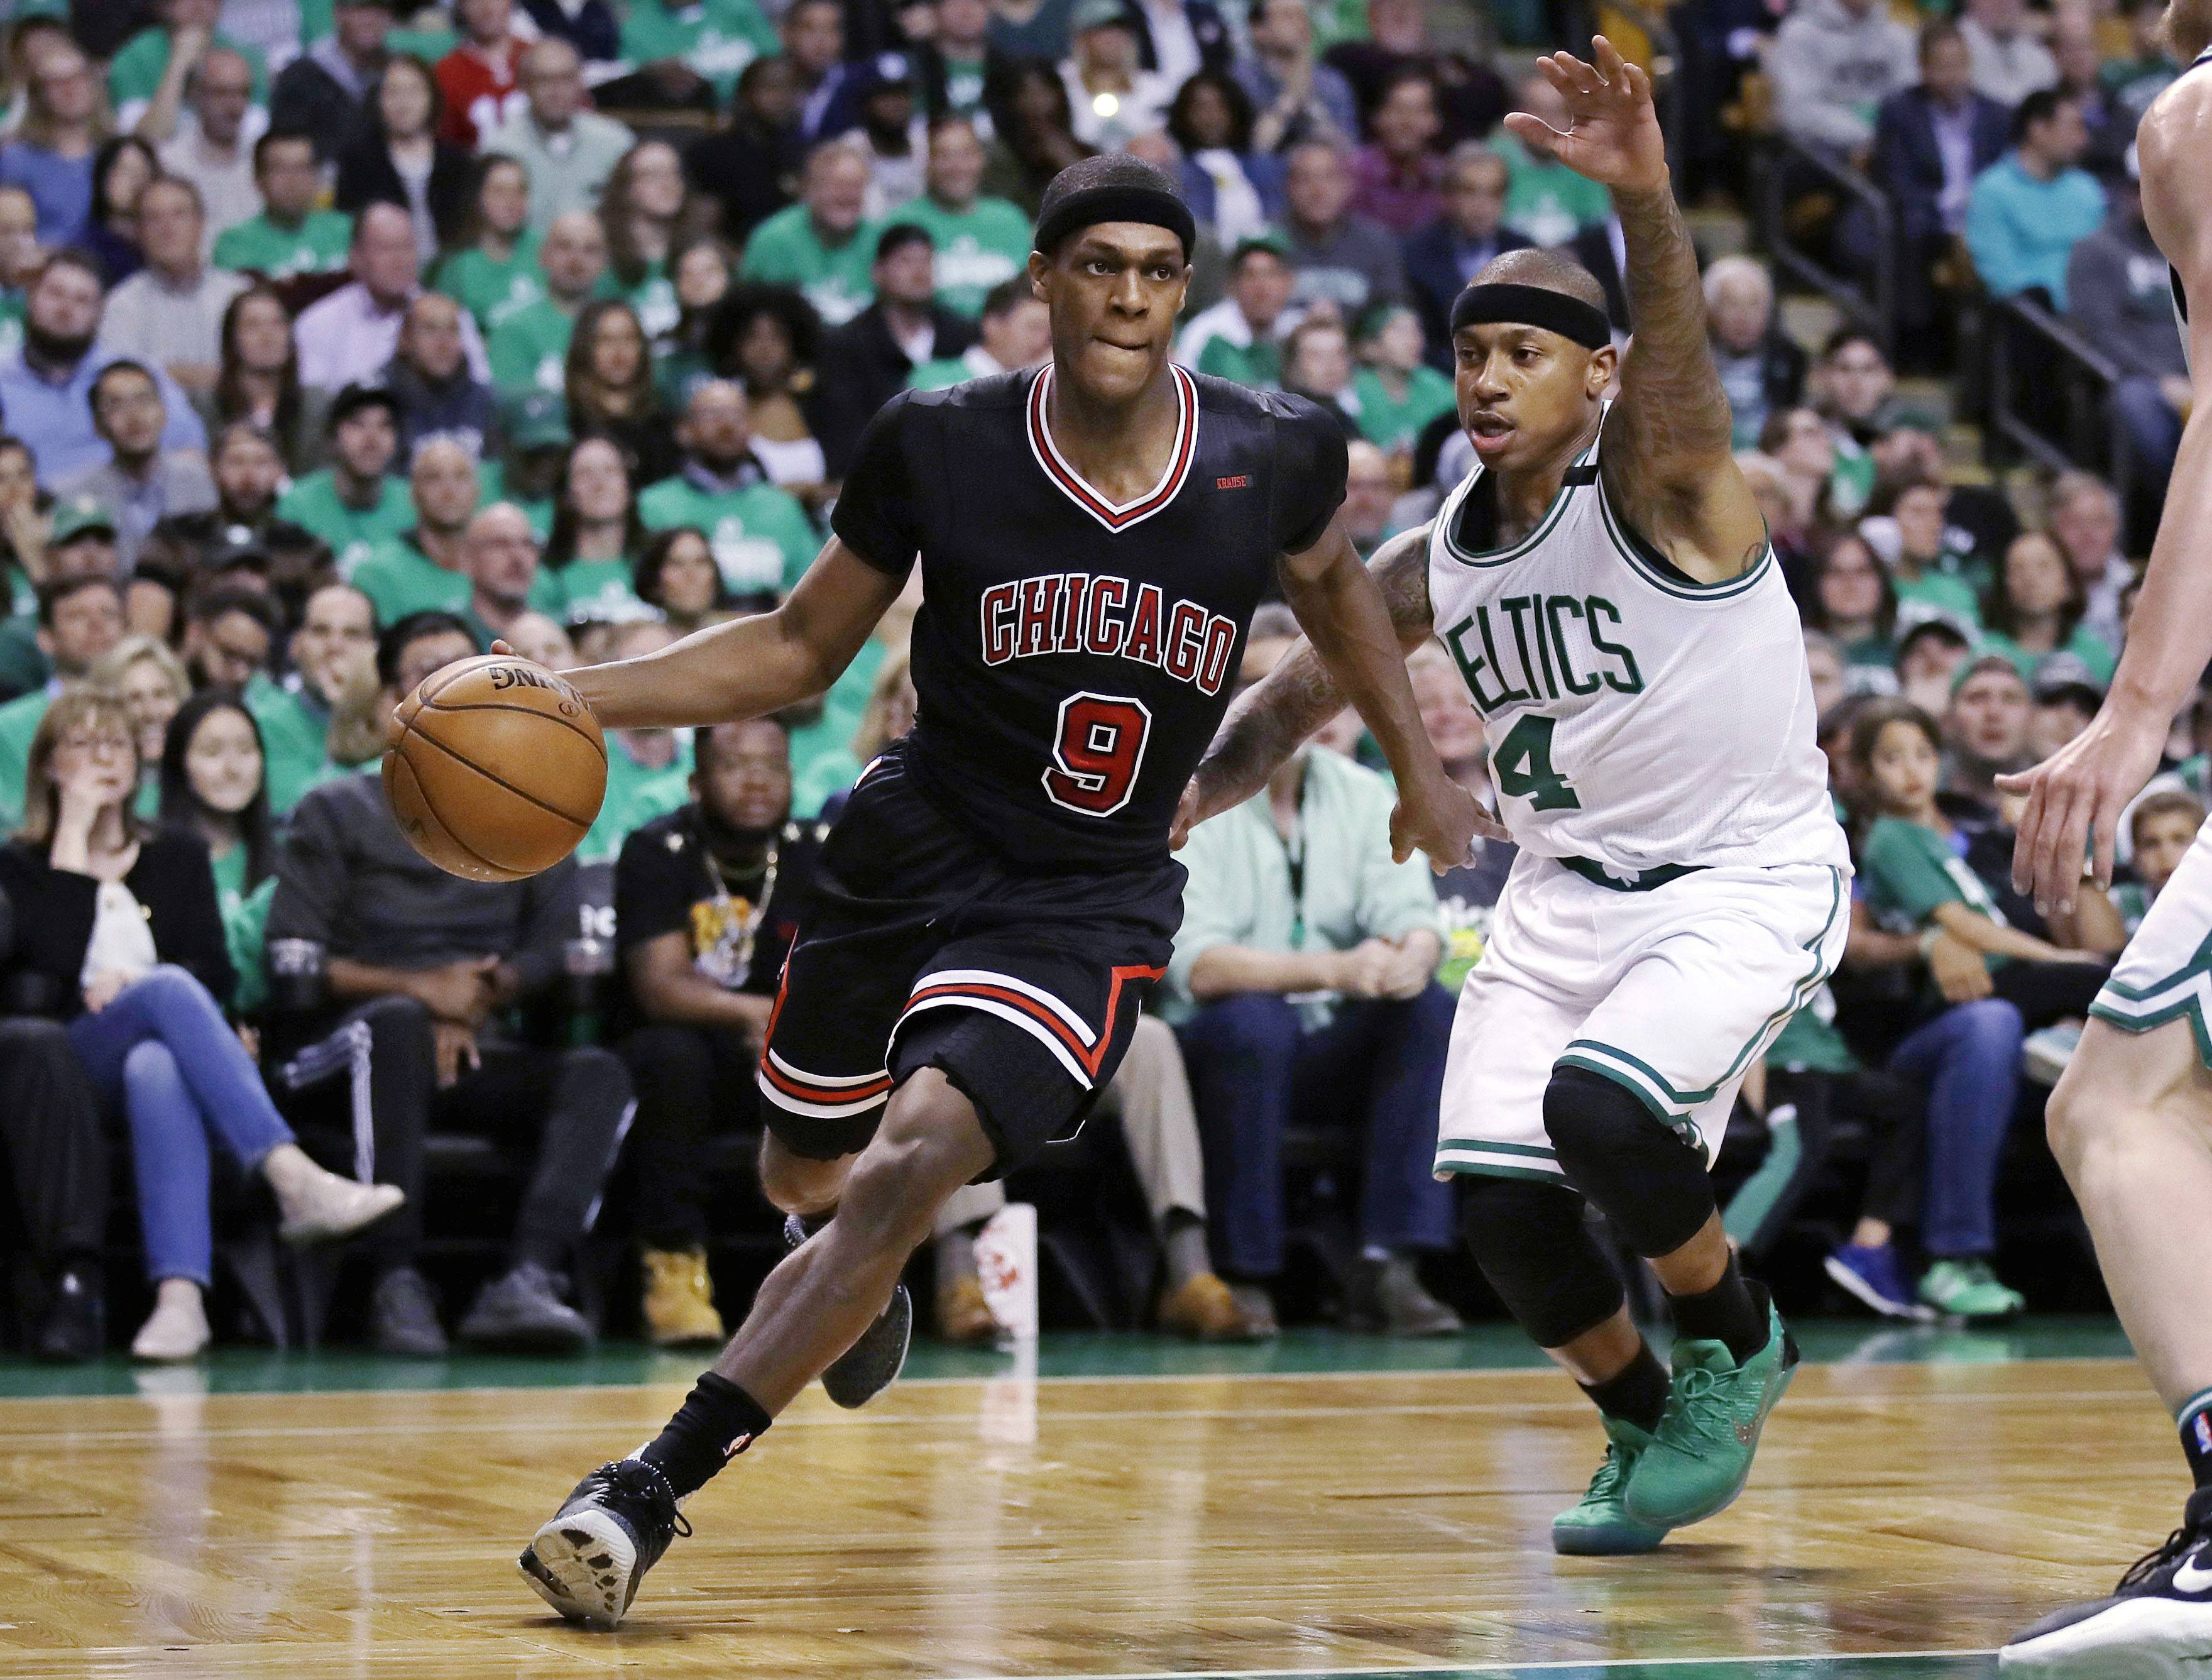 Bad news for Bulls: Rondo out with broken thumb